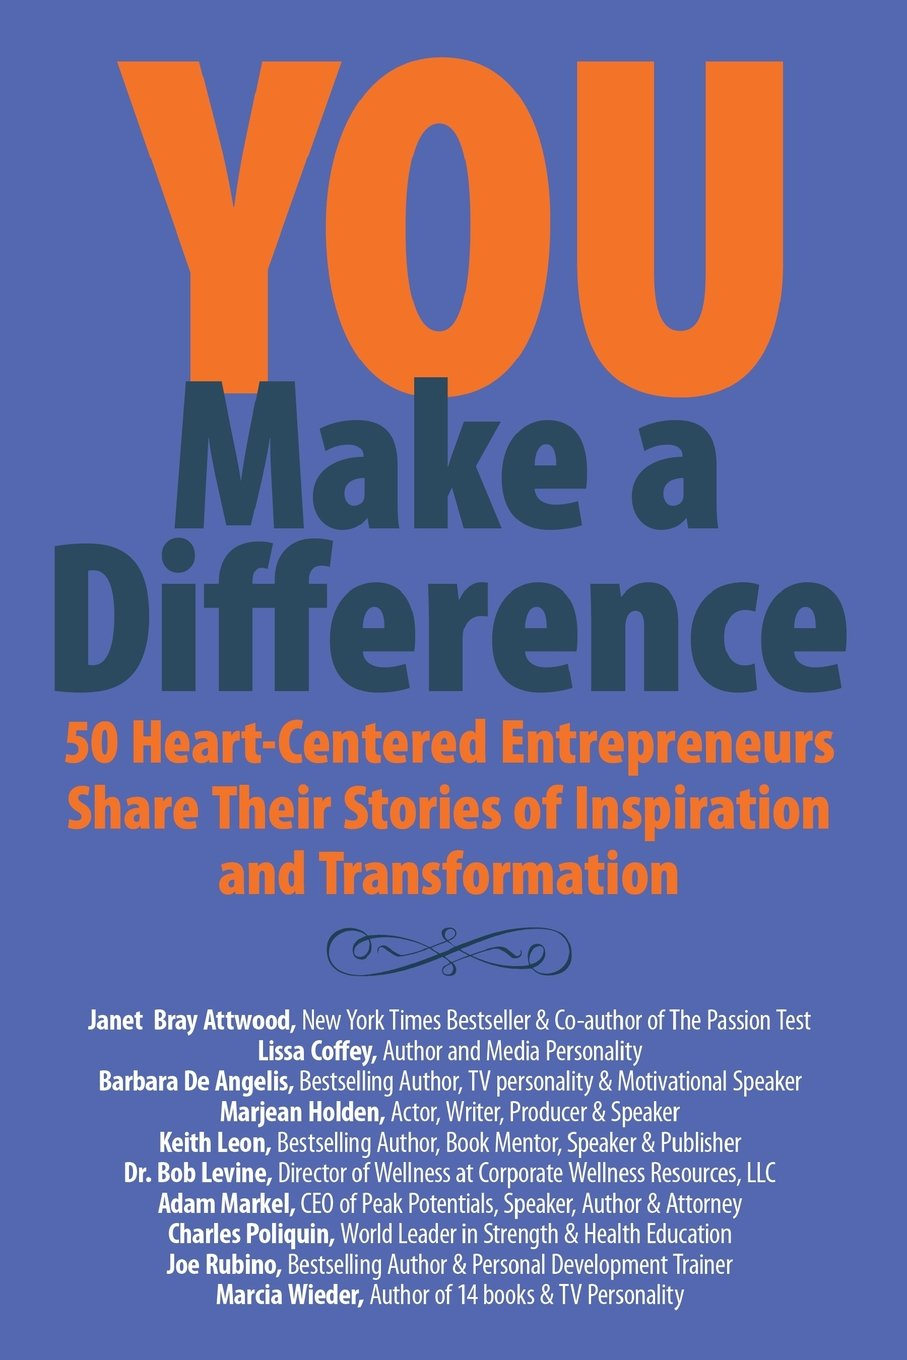 You Make a Difference Book 2012